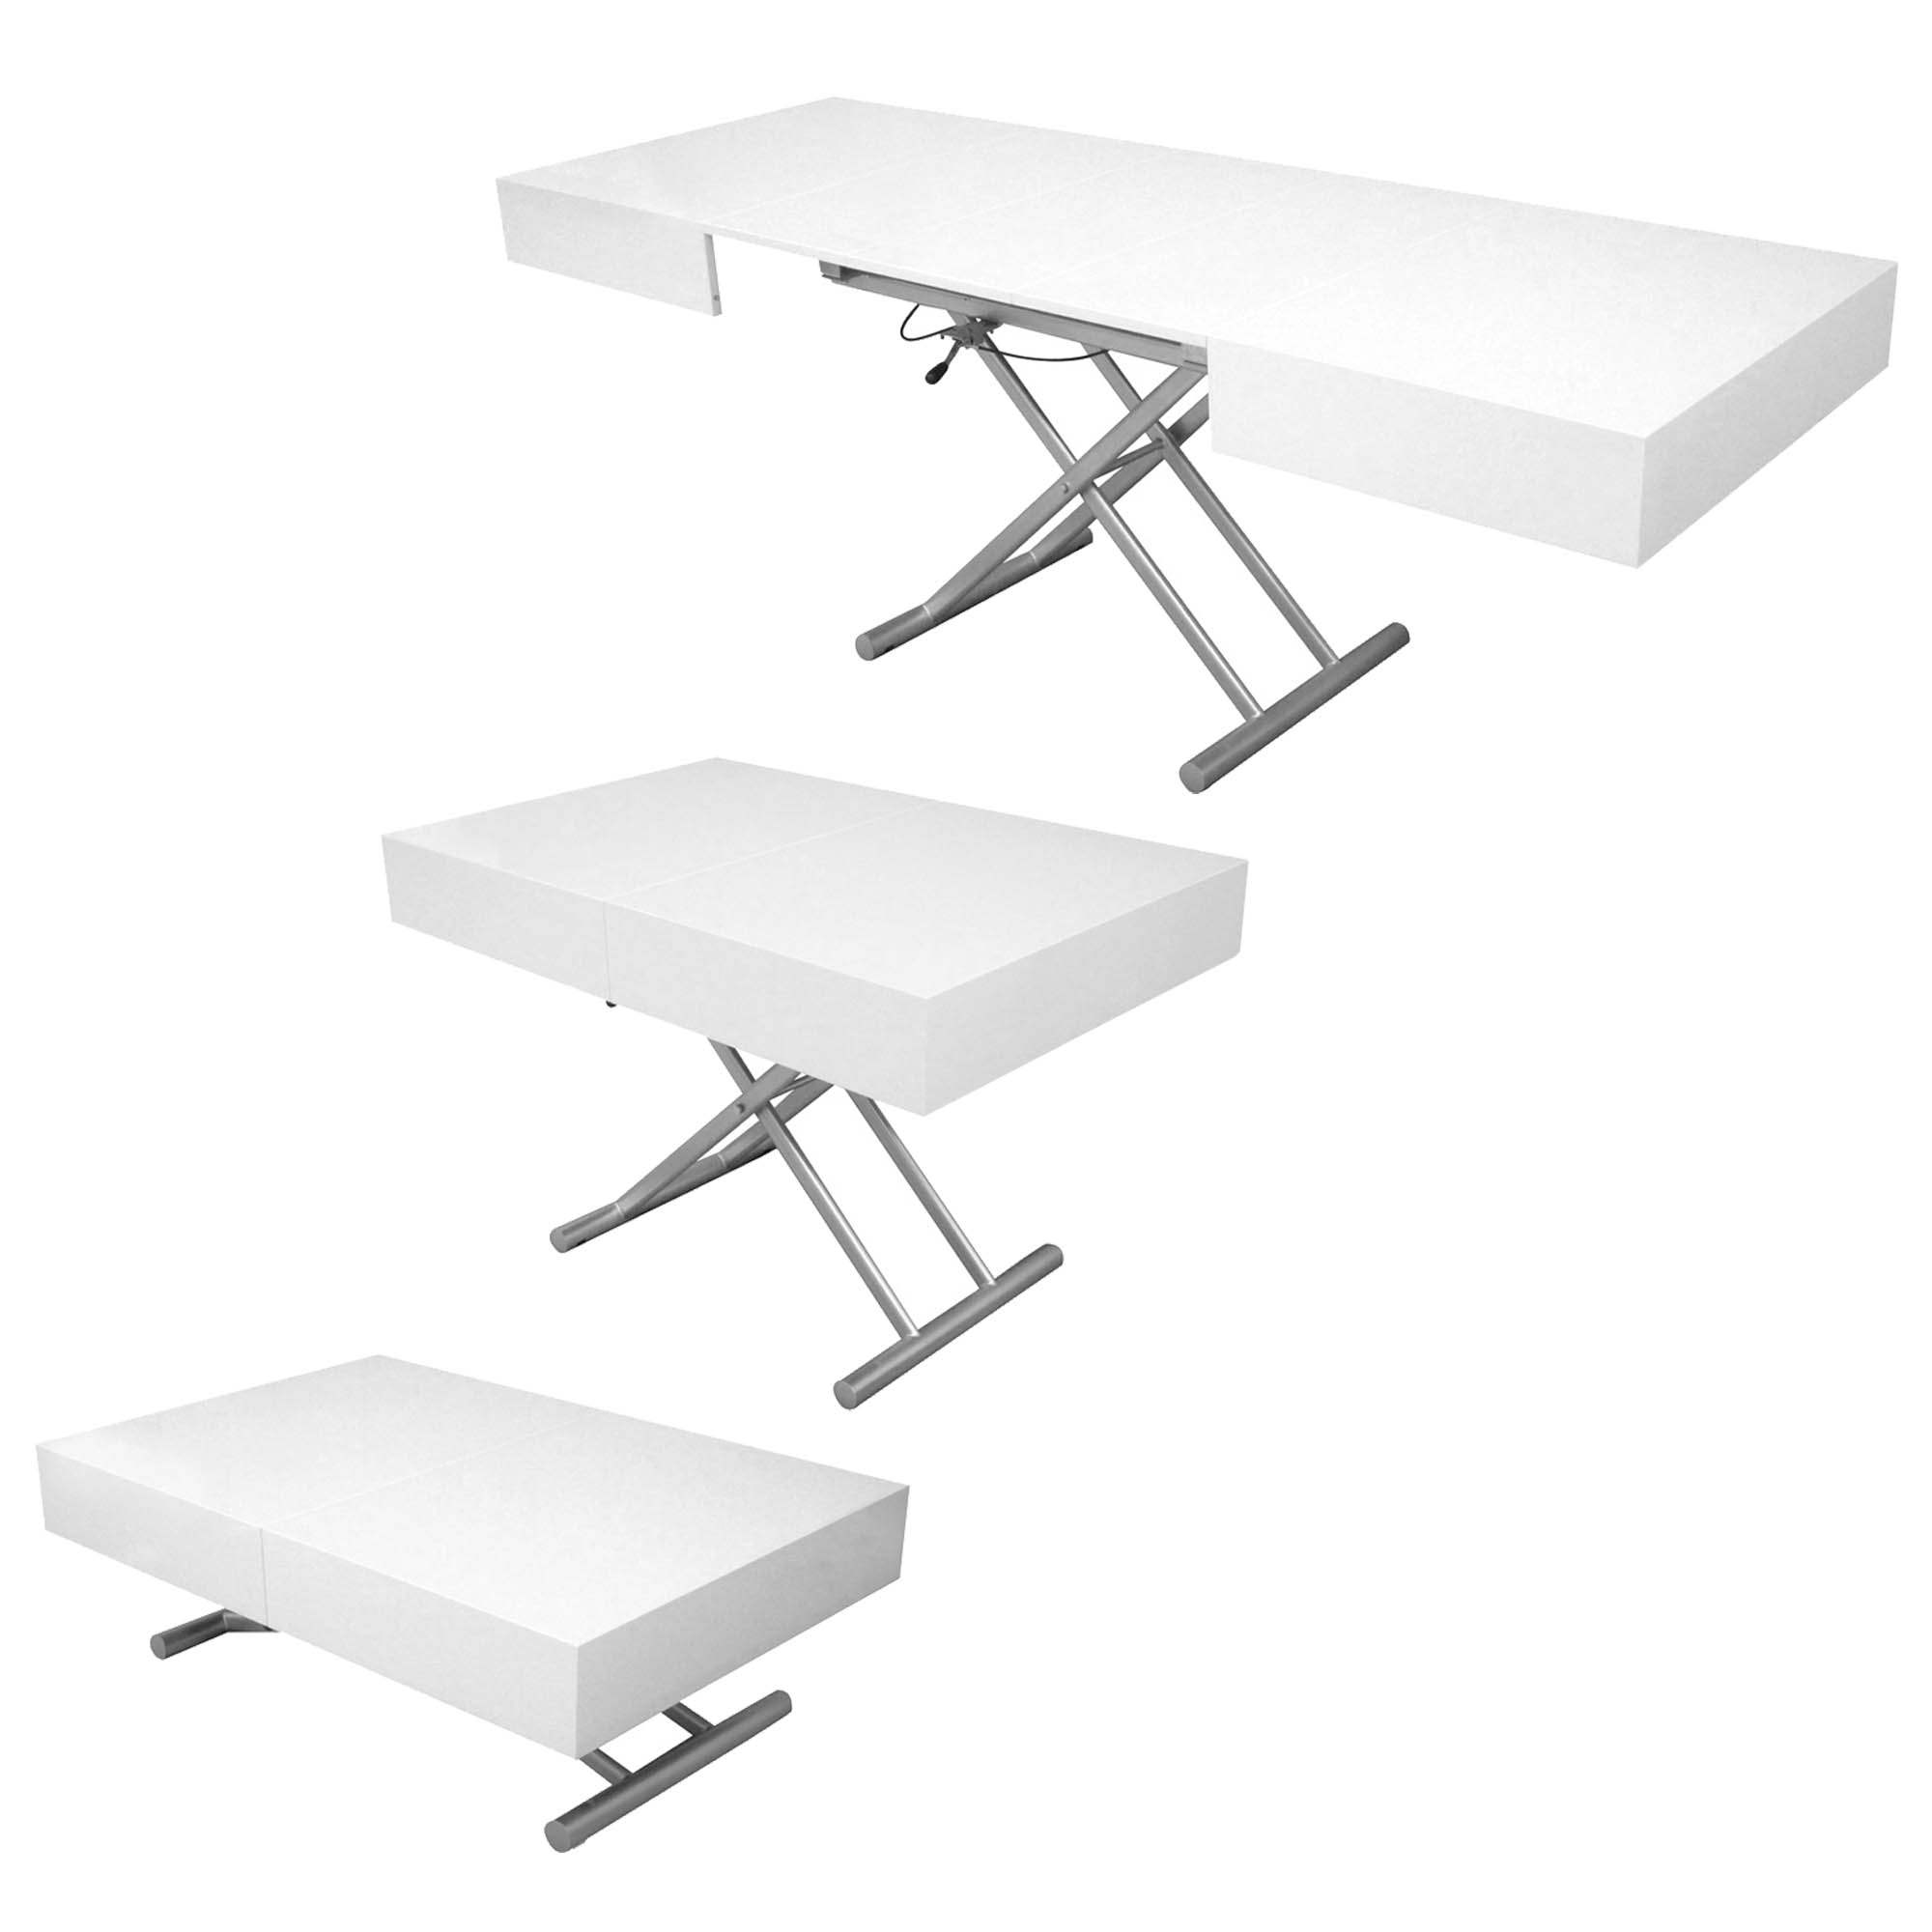 Table Basse Laquee Blanc Table Basse Relevable Extensible Laquée Blanc Smart Xxl